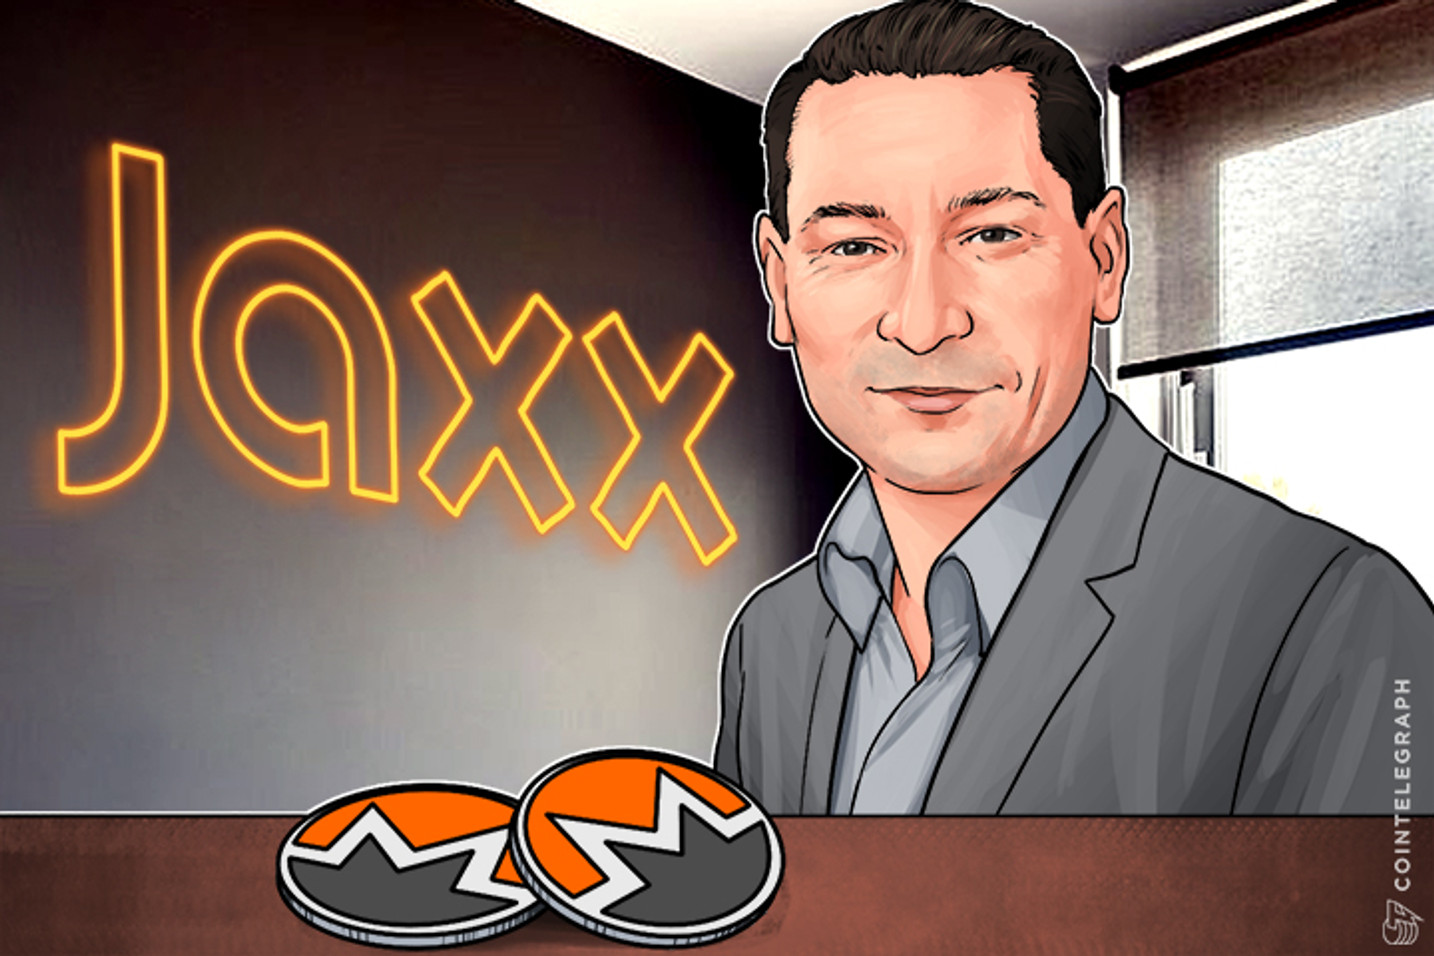 What Really Happened With Jaxx's Failed Monero Integration Attempt: Di Iorio